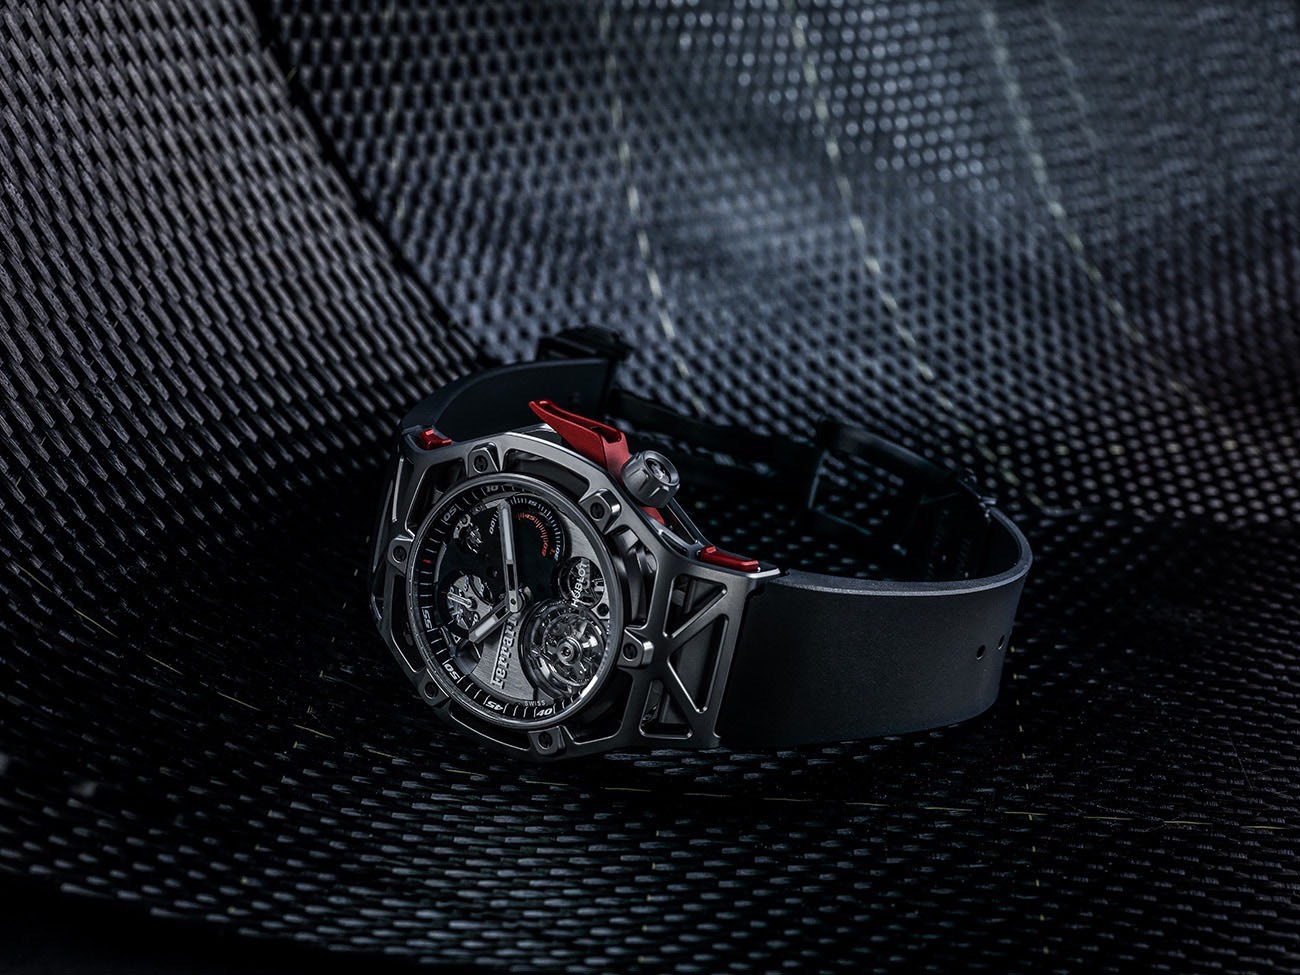 A Ferrari Design for a Hublot watch  Celebrating Ferrari's 70th Anniversary